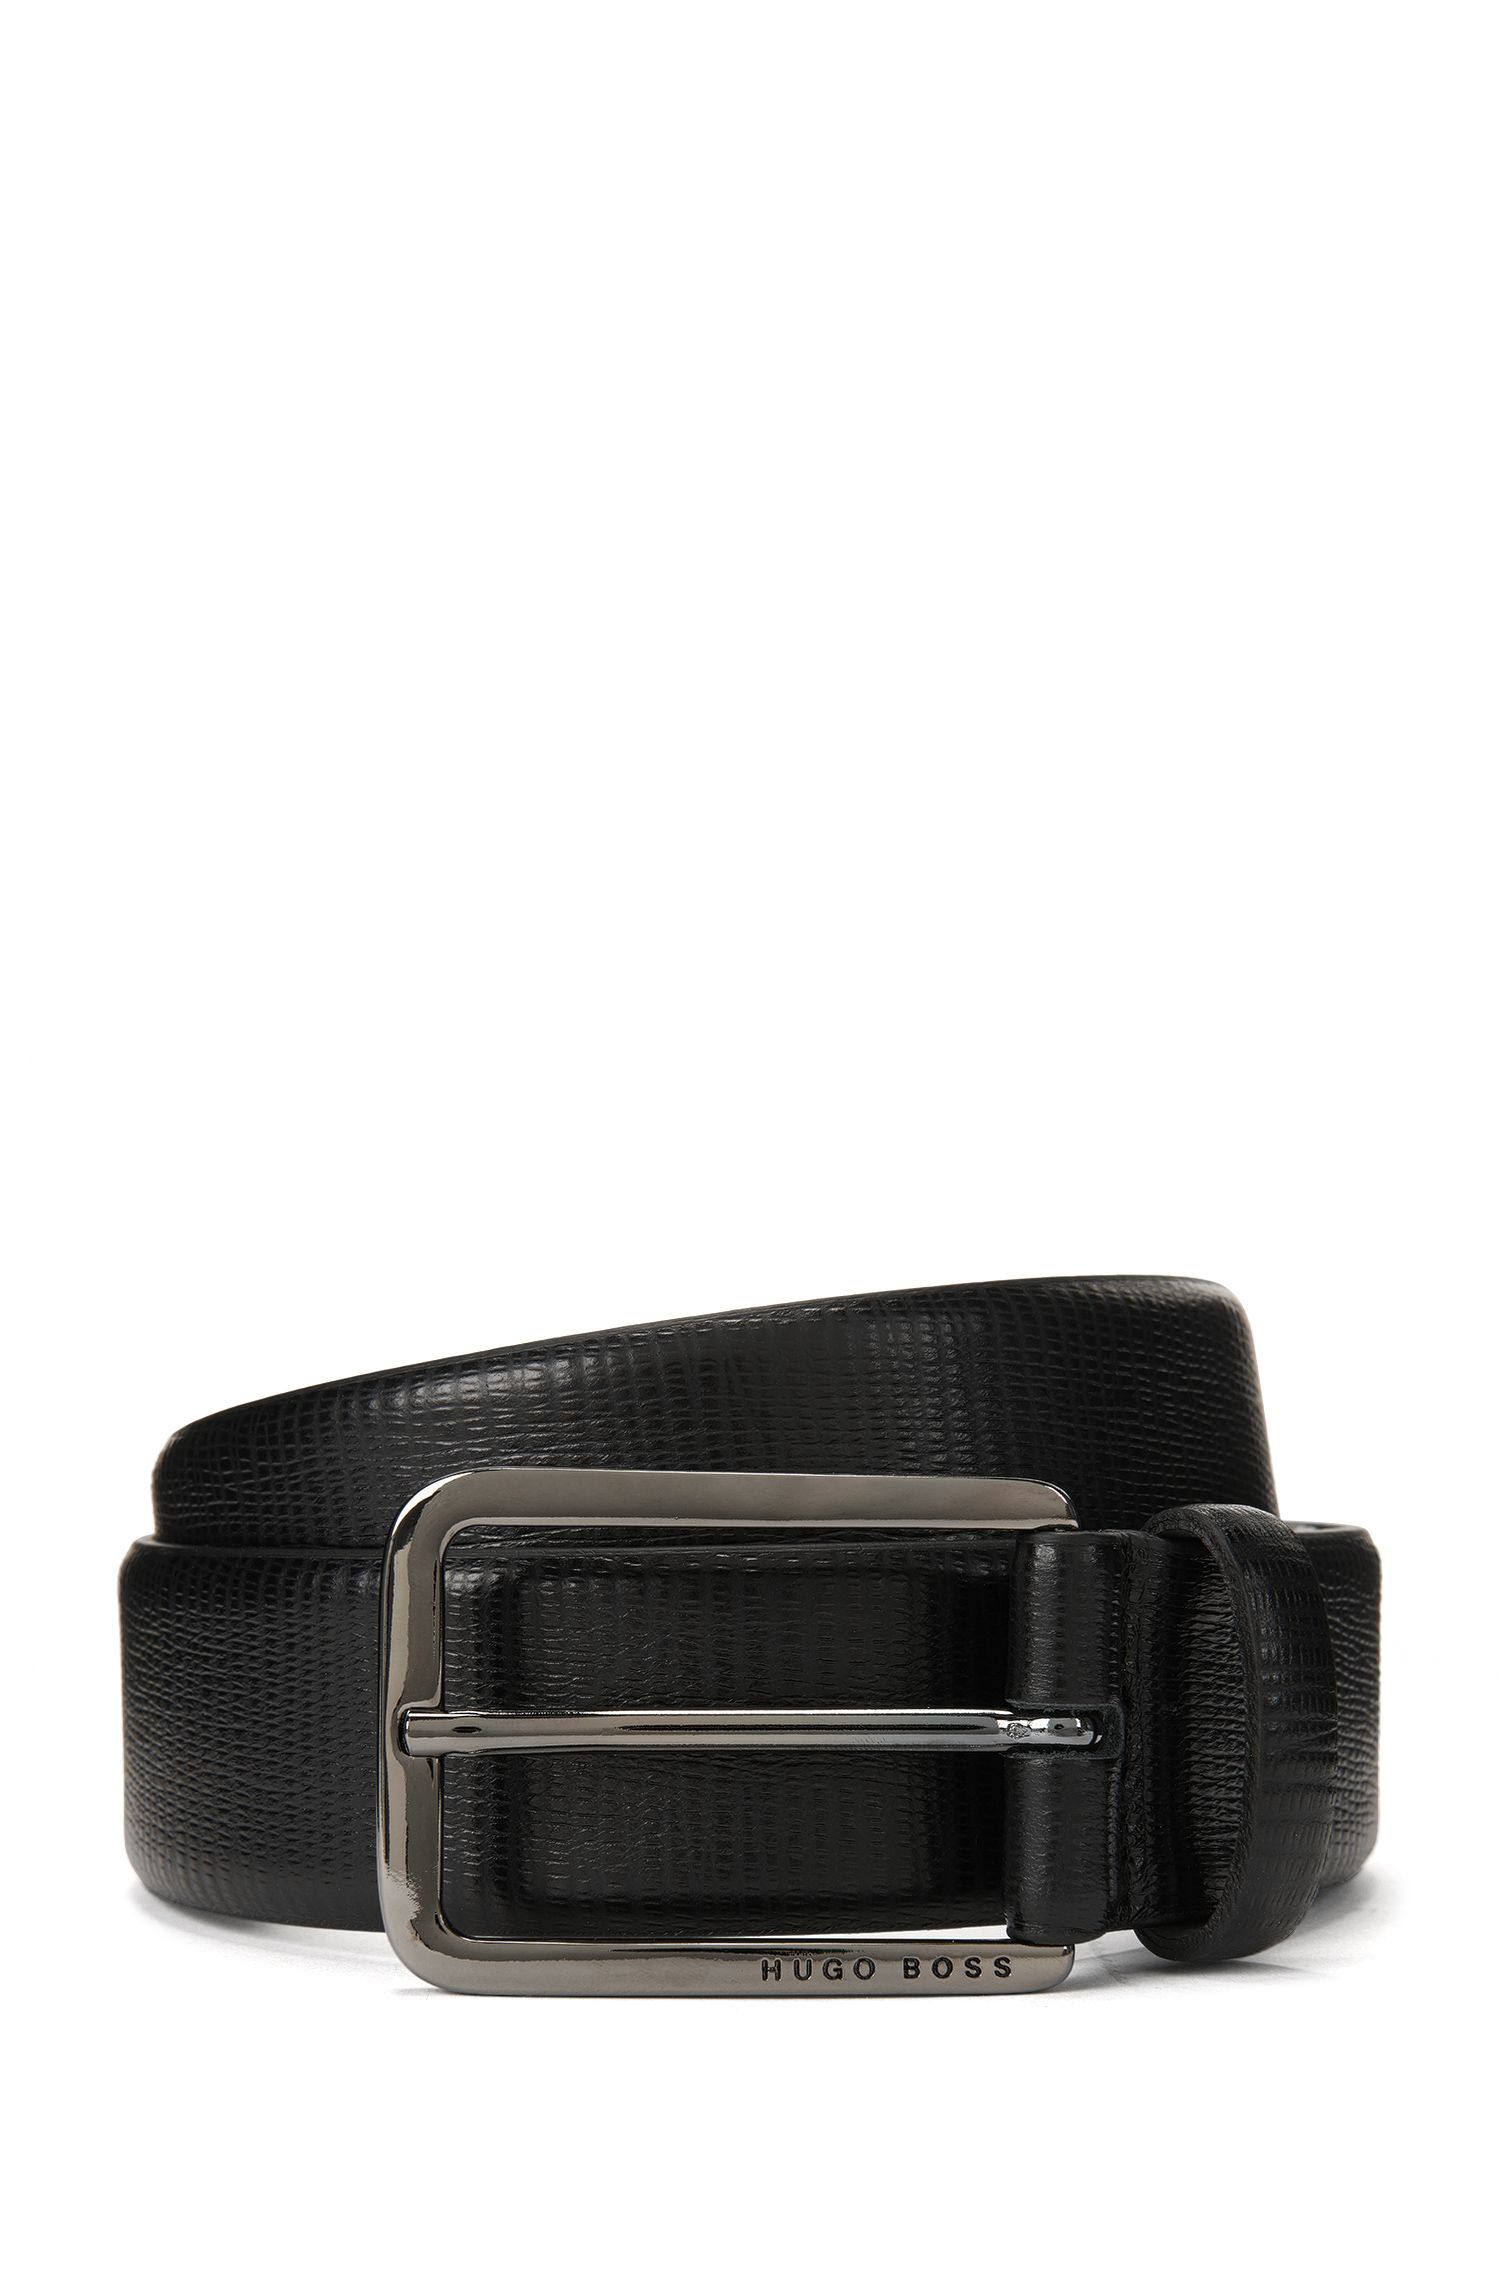 Italian calf-leather belt with embossed finish